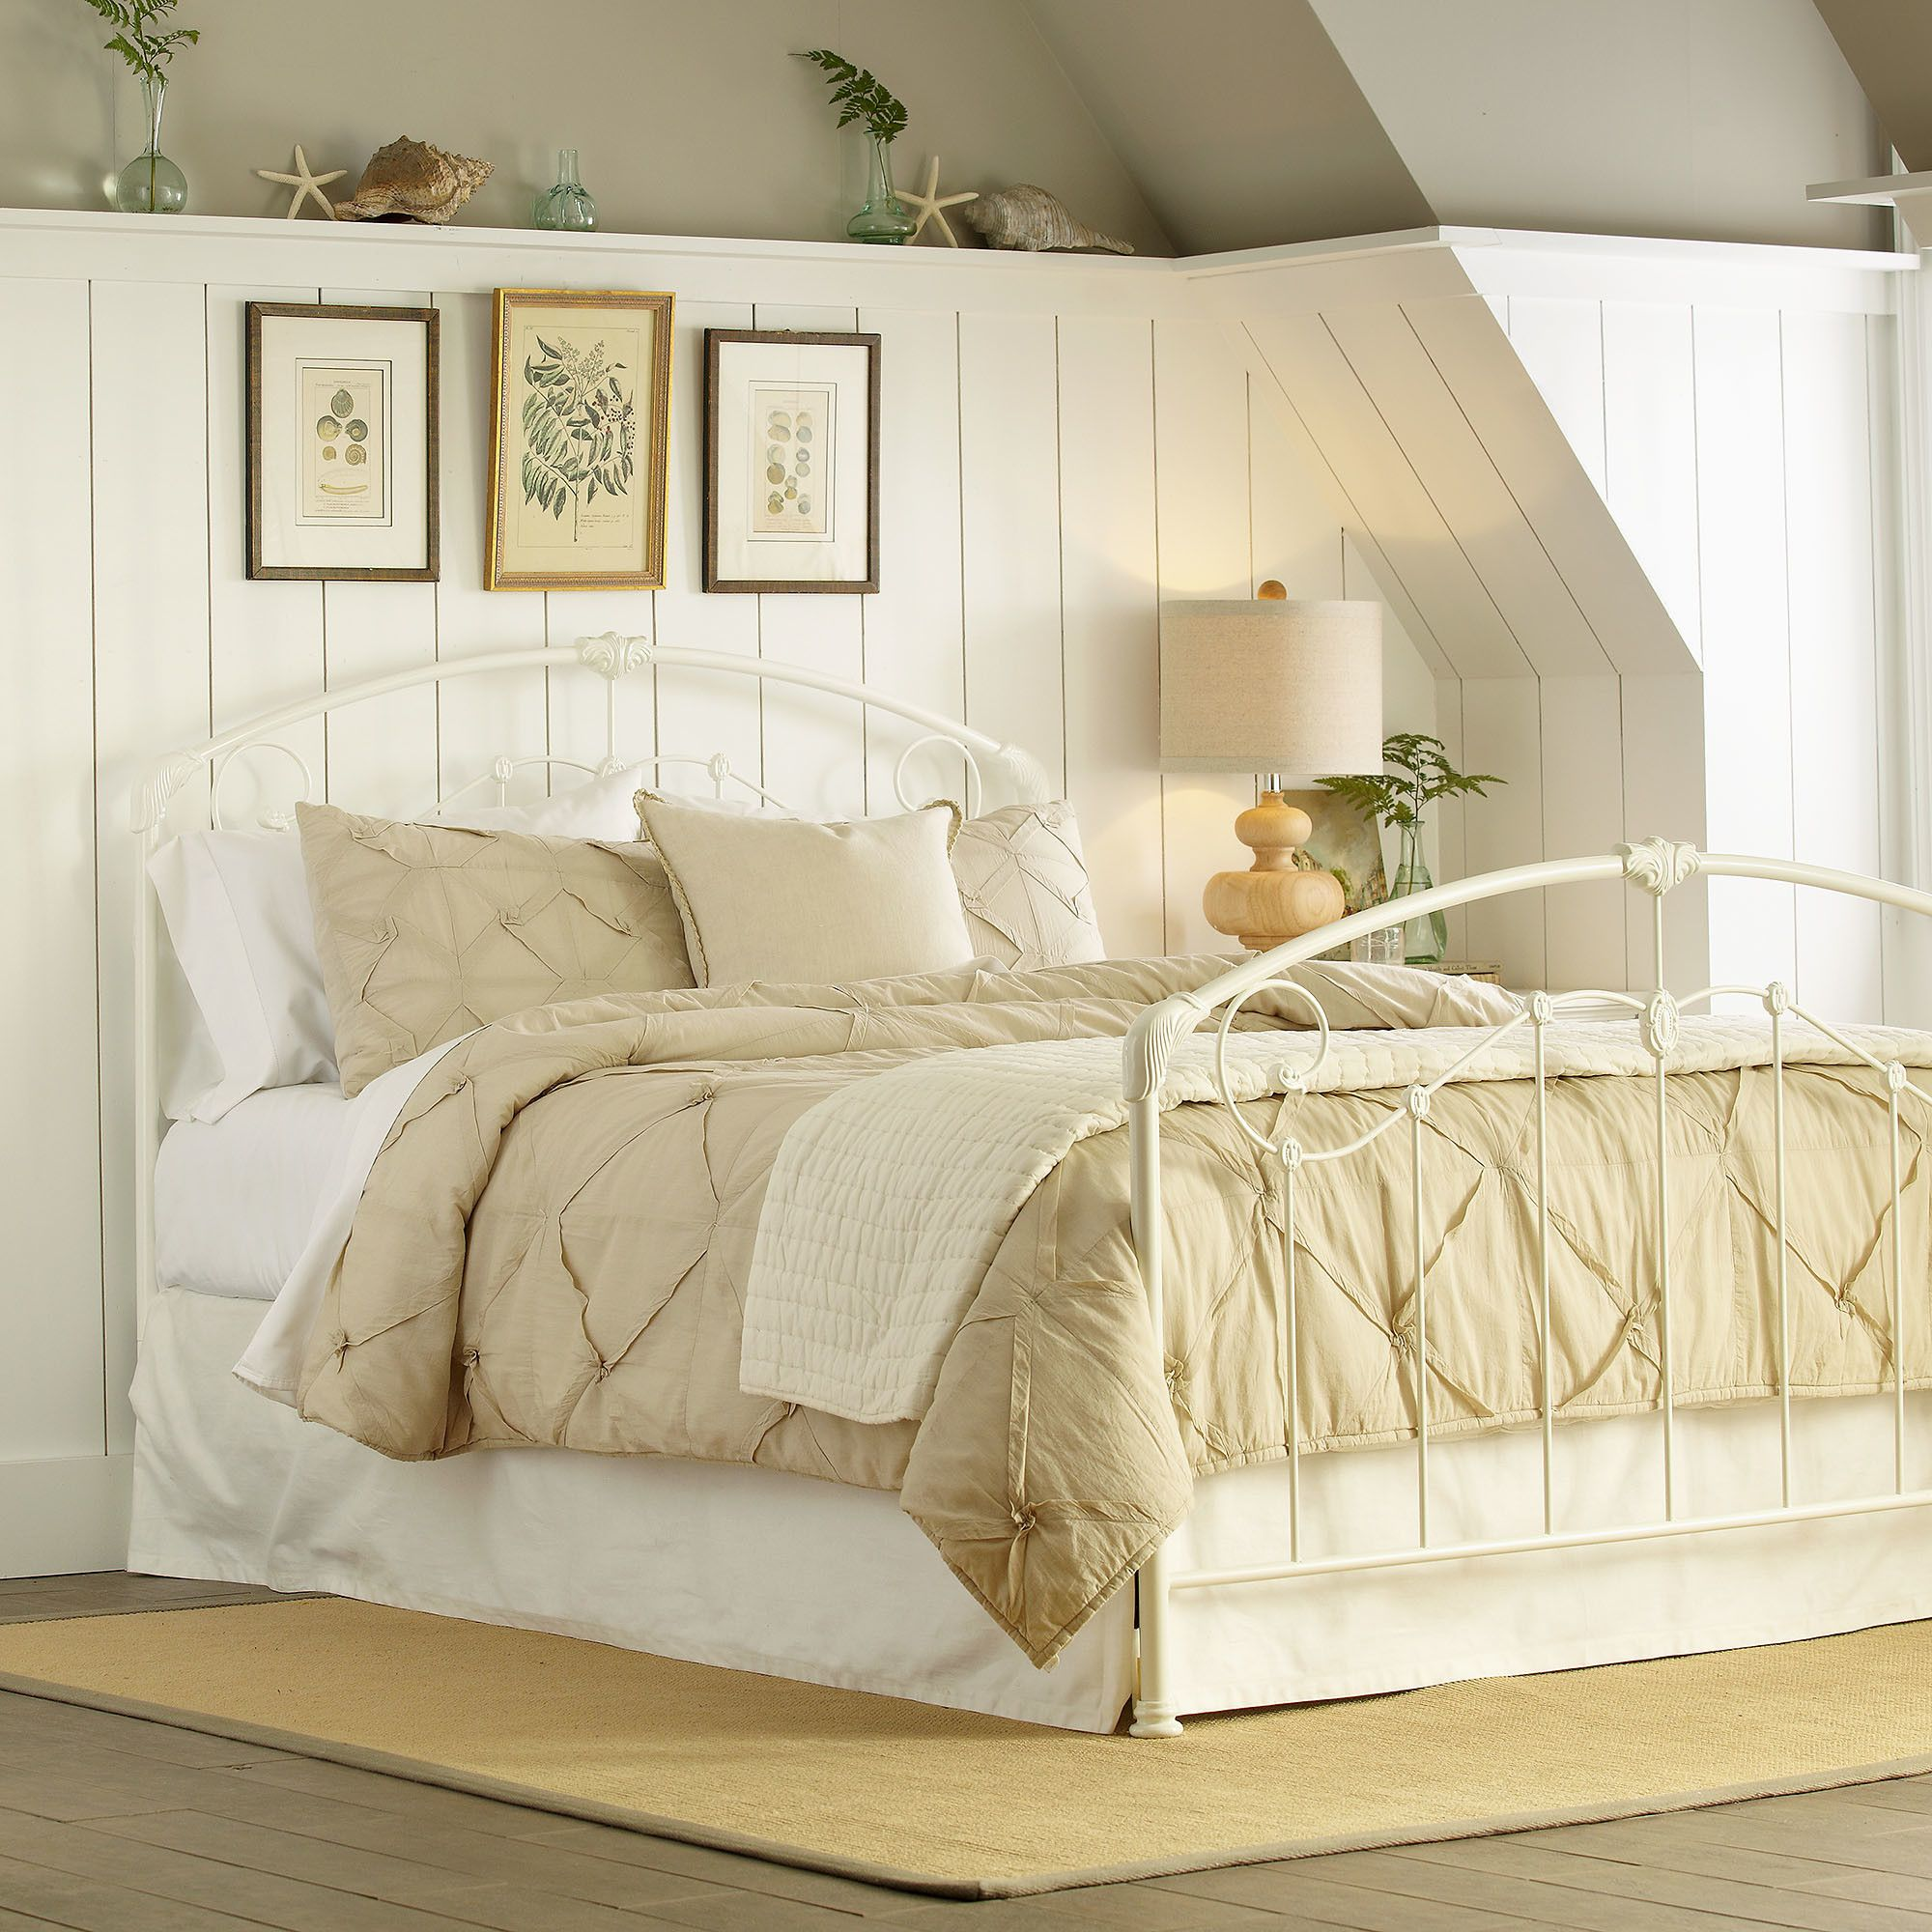 Pin by The Little Corner on Bedrooms & Bedding Classic